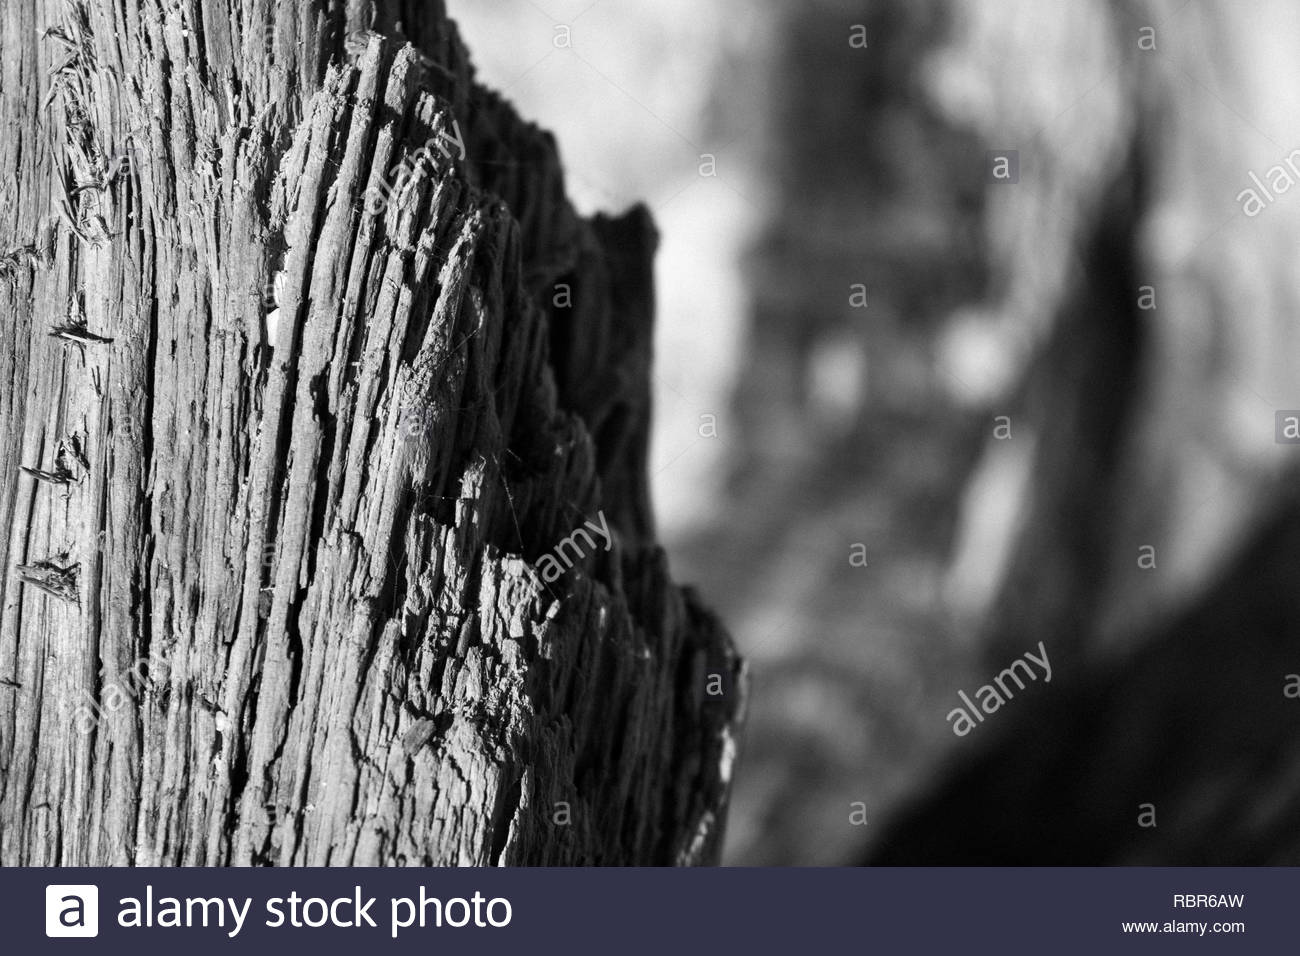 Close-up of driftwood texture - Stock Image